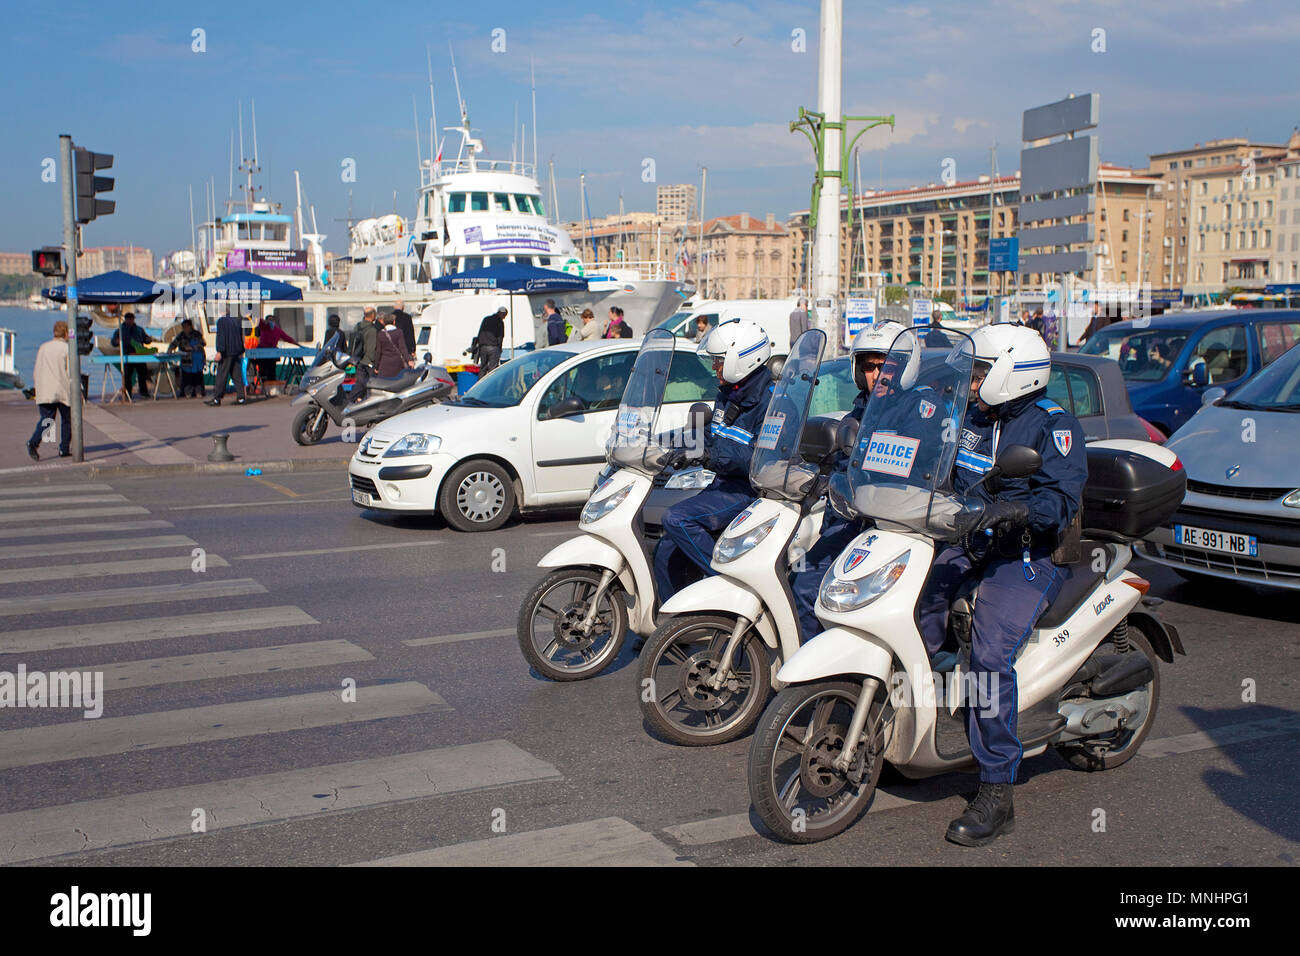 Police men on motor bikes at the harbour of Marseille, Bouches-du-Rhone, Provence-Alpes-Côte d'Azur, South France, France, Europe - Stock Image